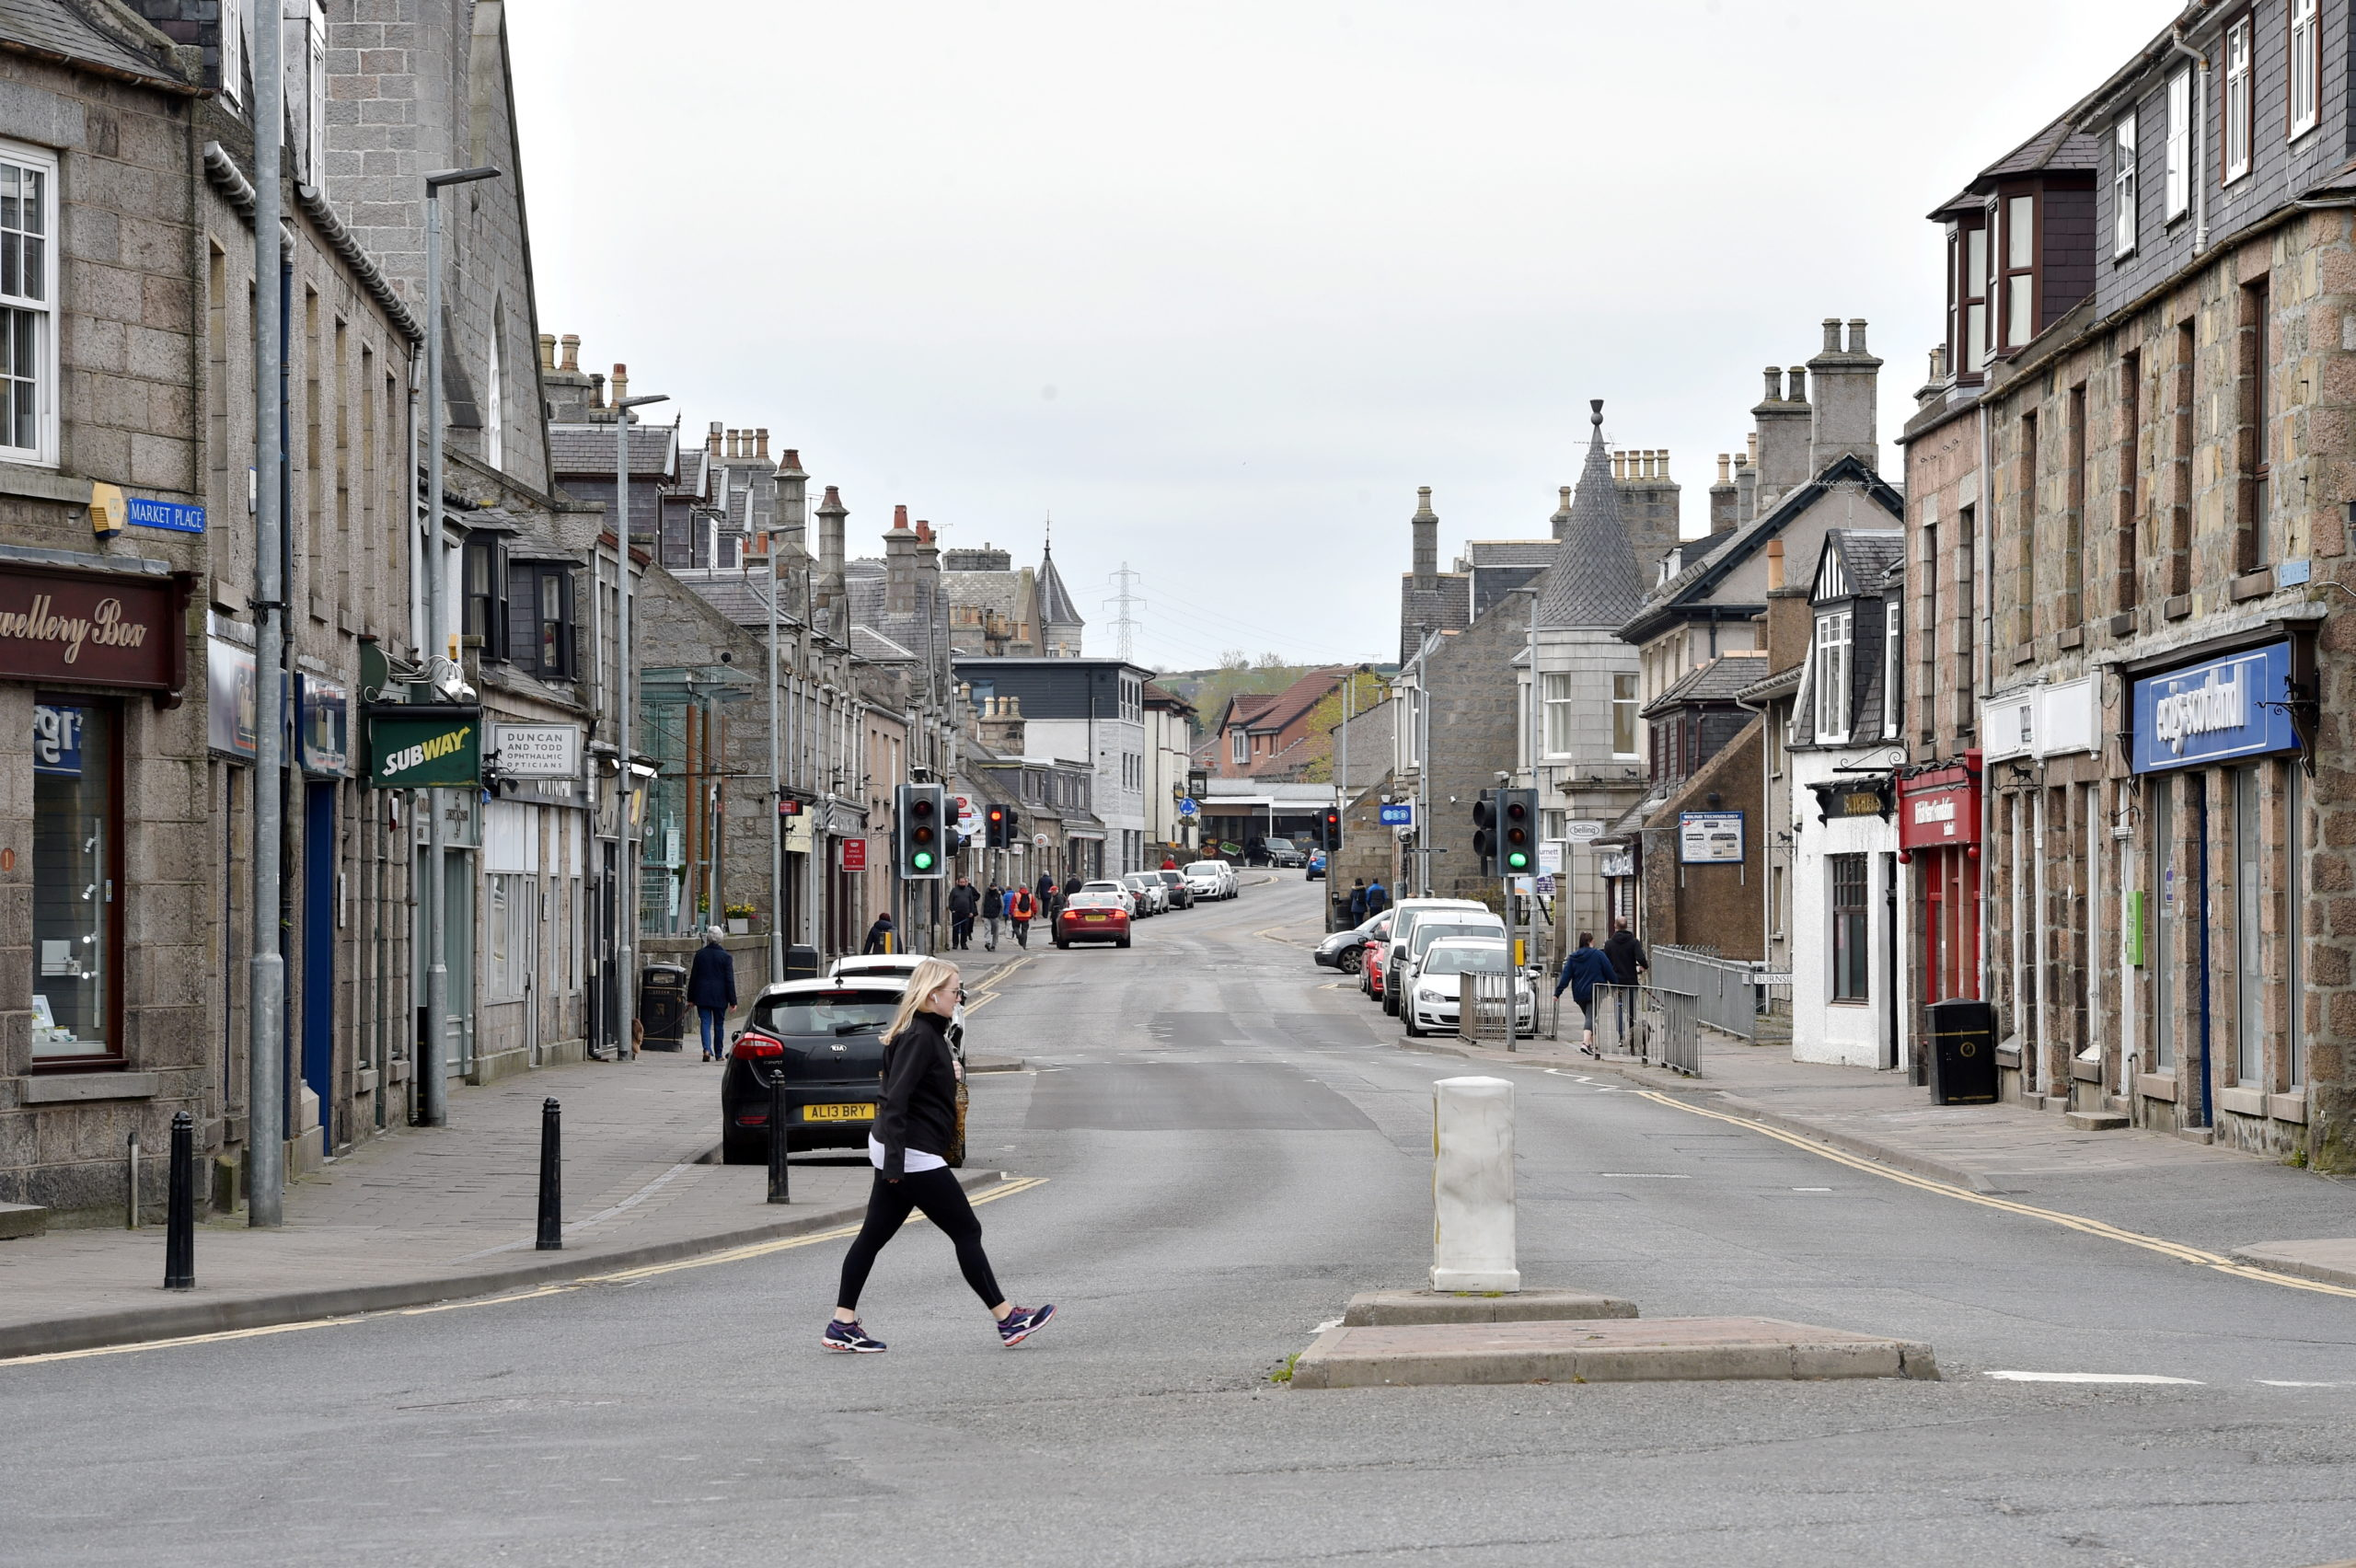 Retailers hope shoppers will soon start returning to places like the High Street in Inverurie. Picture by Darrell Benns